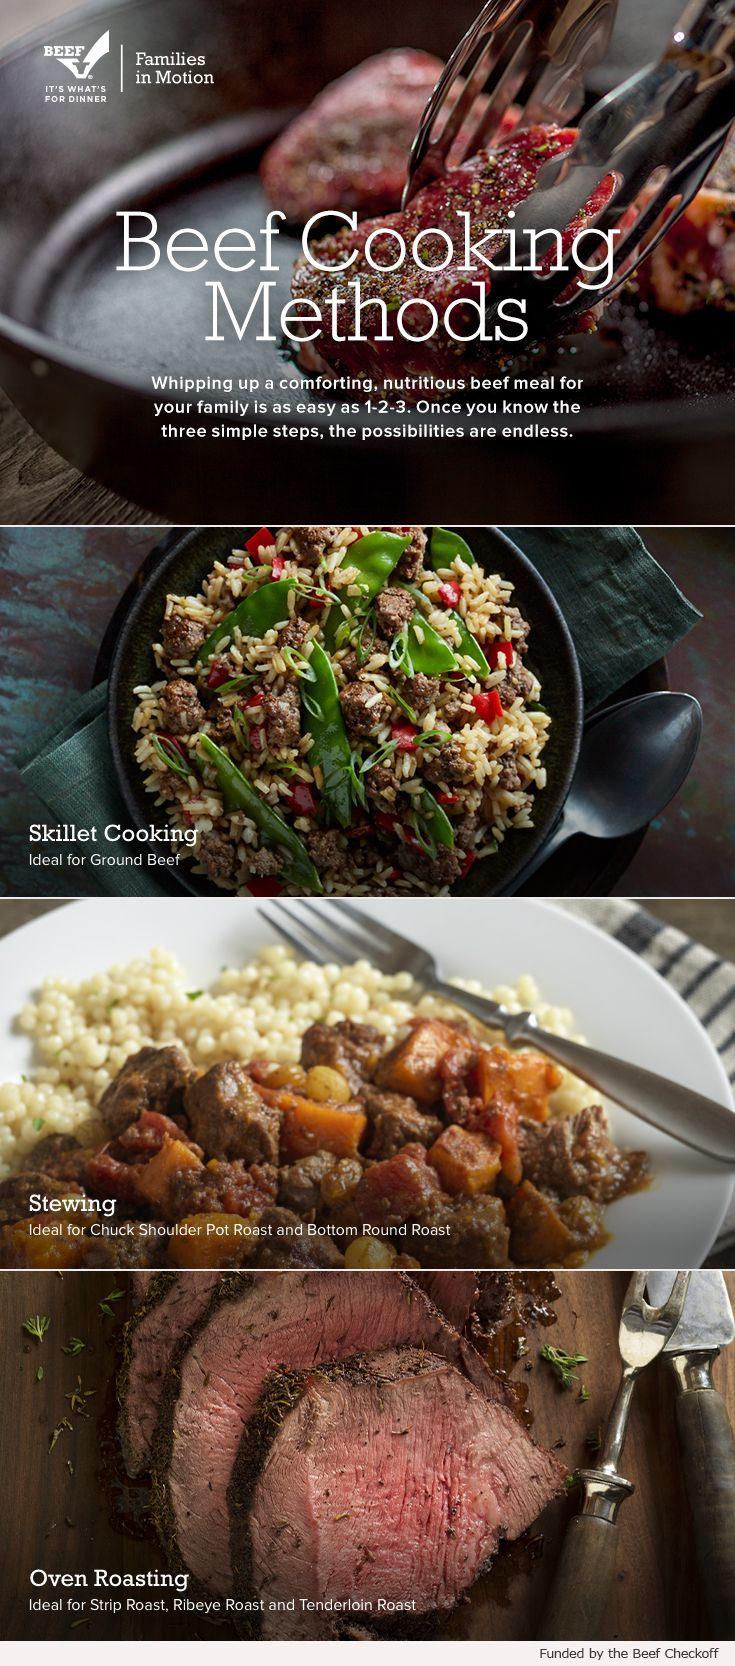 Click here to learn more about your favorite beef cooking methods. Enjoy!